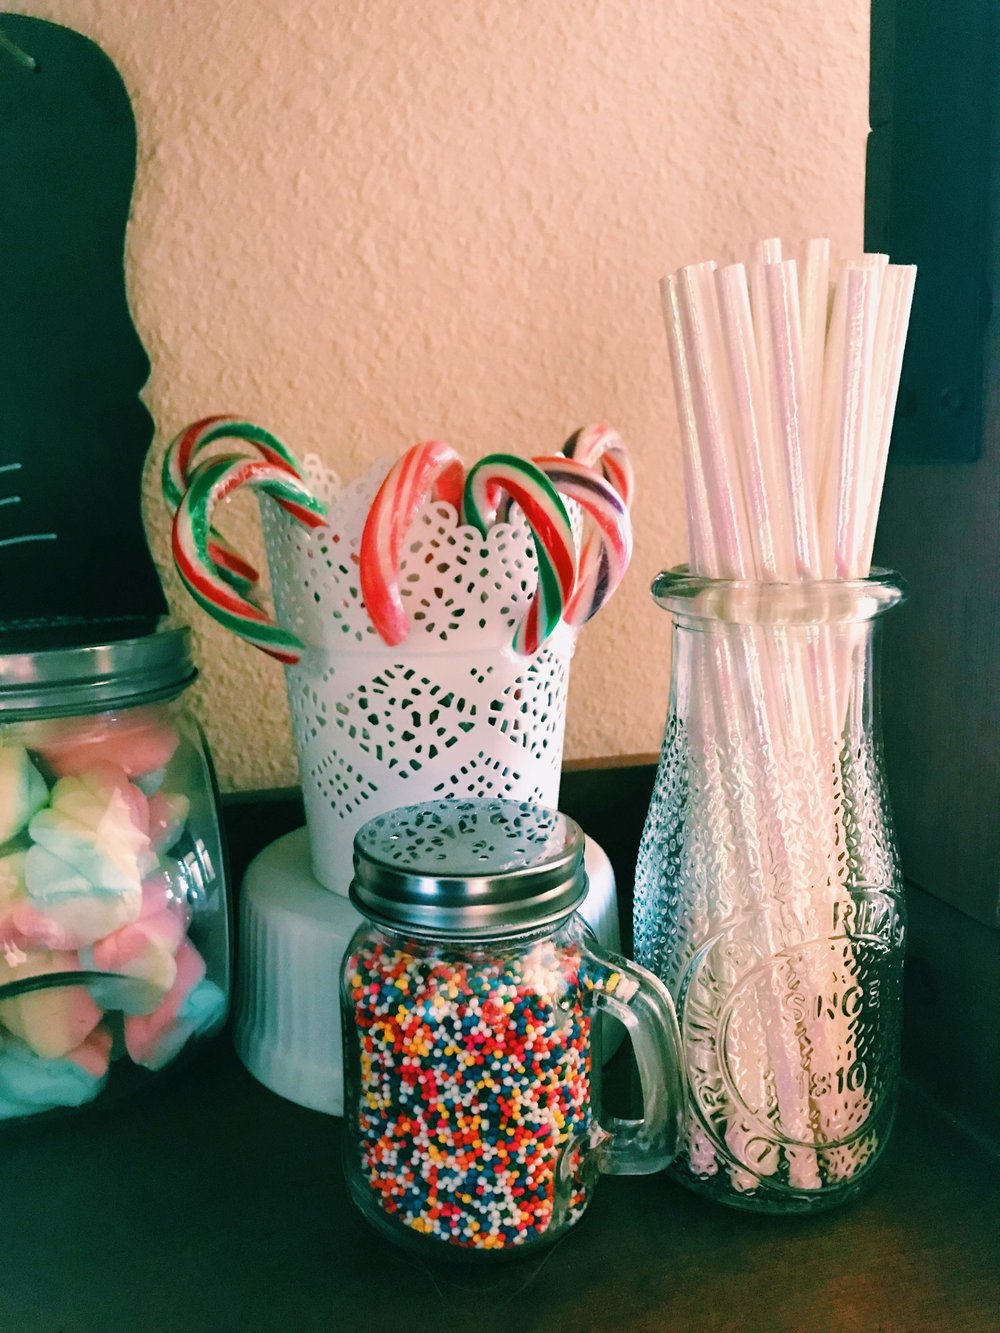 Three Heel Clicks - DIY Hot Chocolate Bar (8).jpg